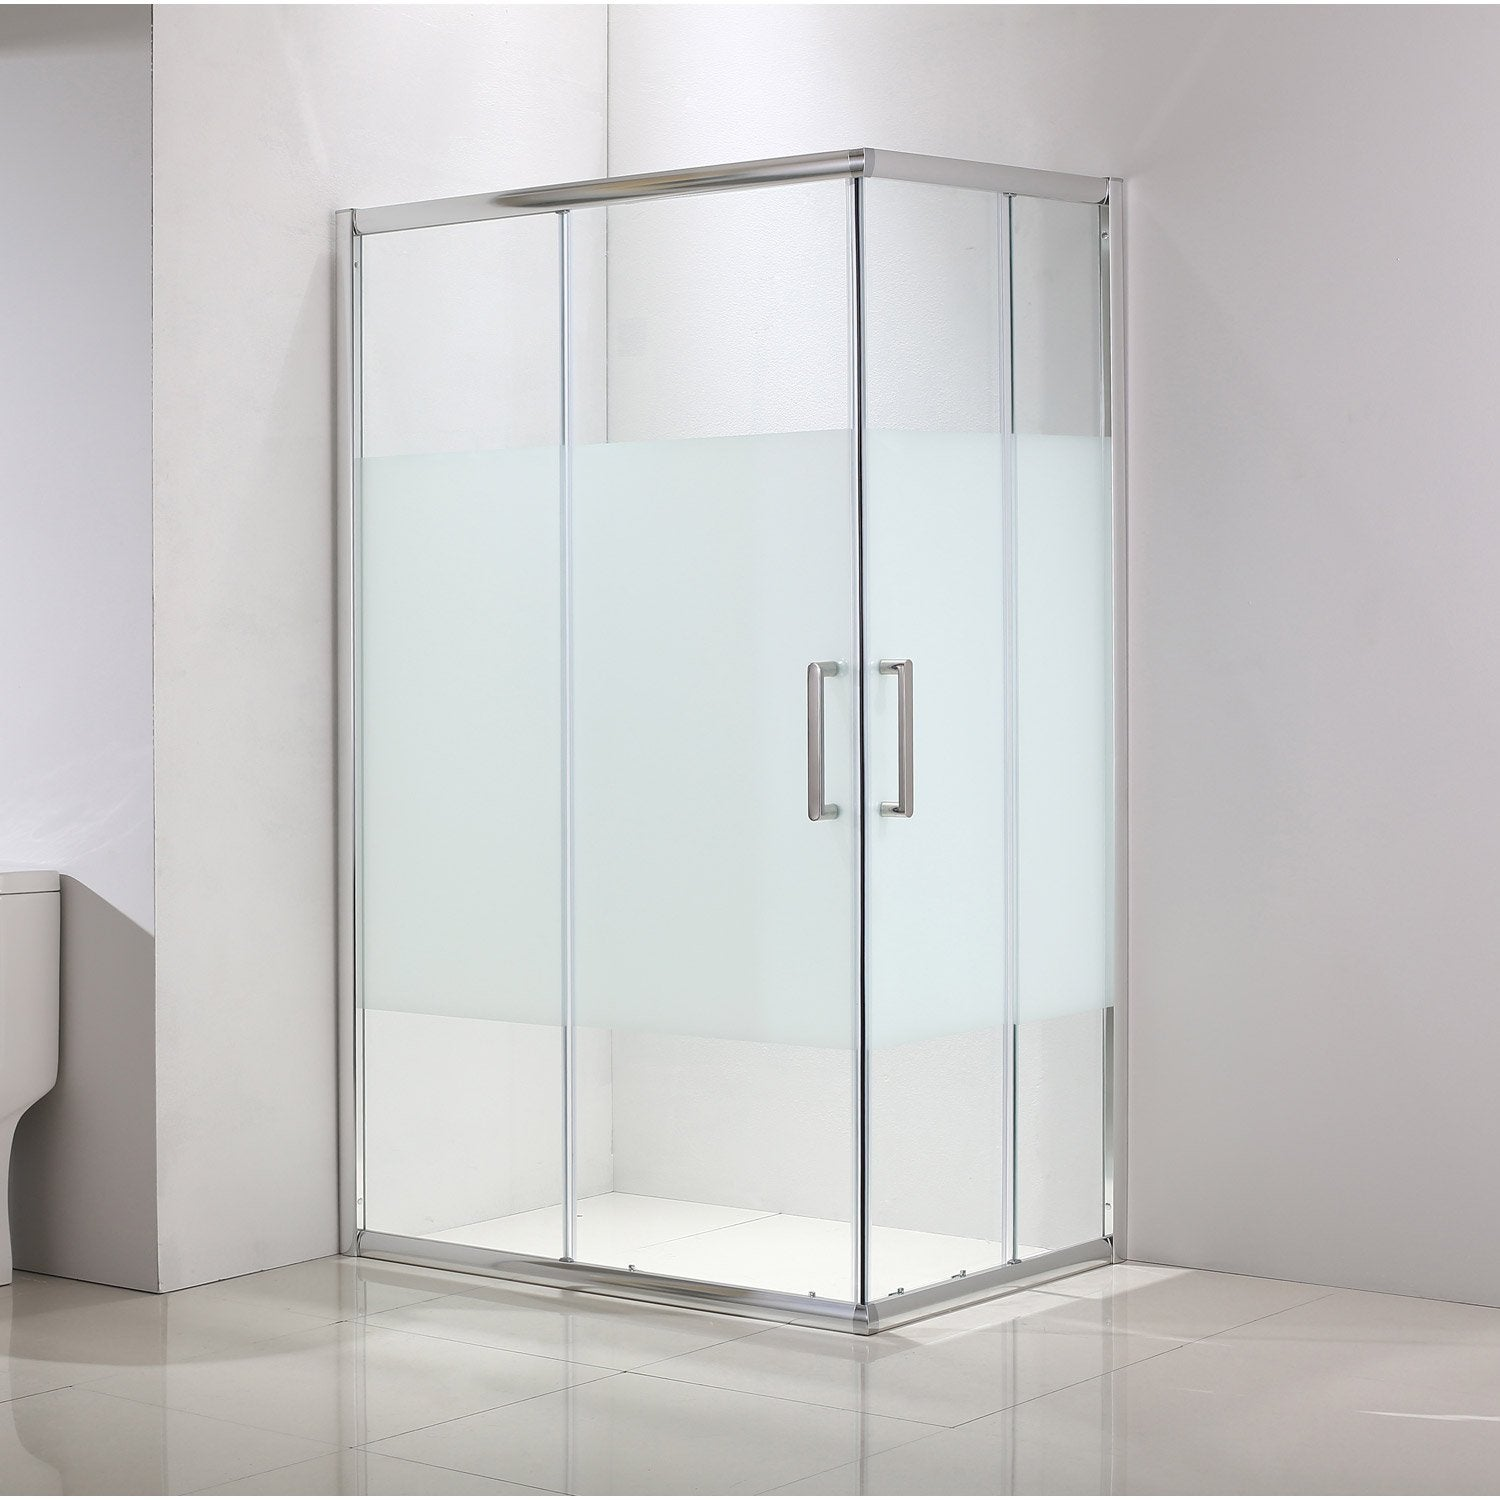 Porte de douche coulissante angle rectangle x cm chrom quad leroy merlin Porte de douche 100 cm